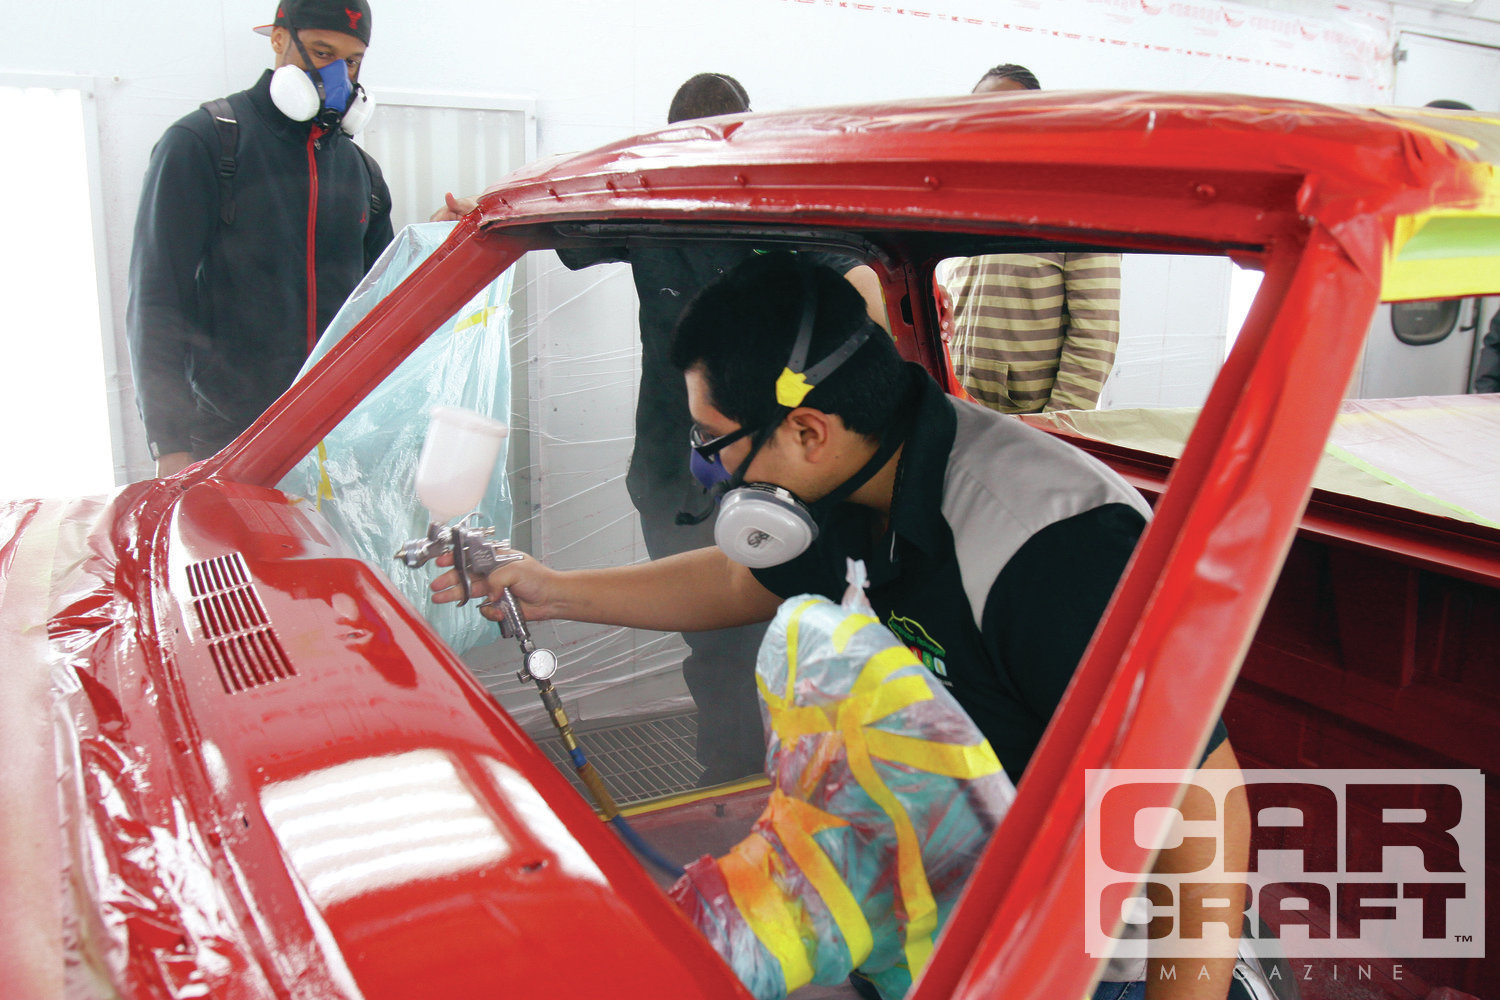 [16] After the clearcoat cured, we remasked the car to paint the interior. The students each took a turn with the paint gun.